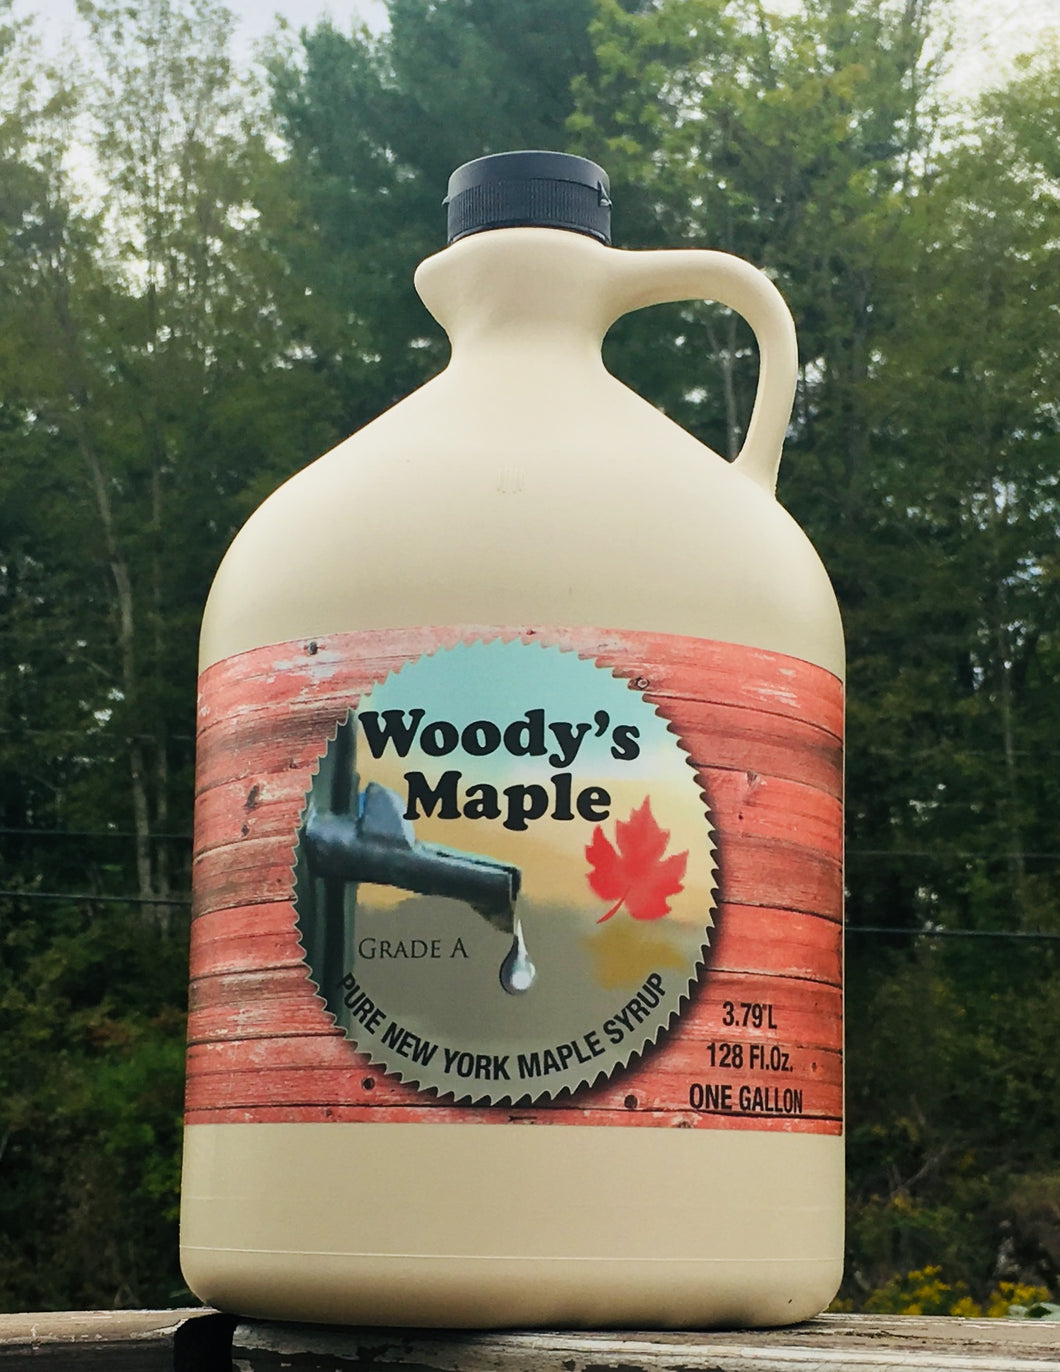 Pure New York Maple Syrup (Grade A) - Woody's Maple